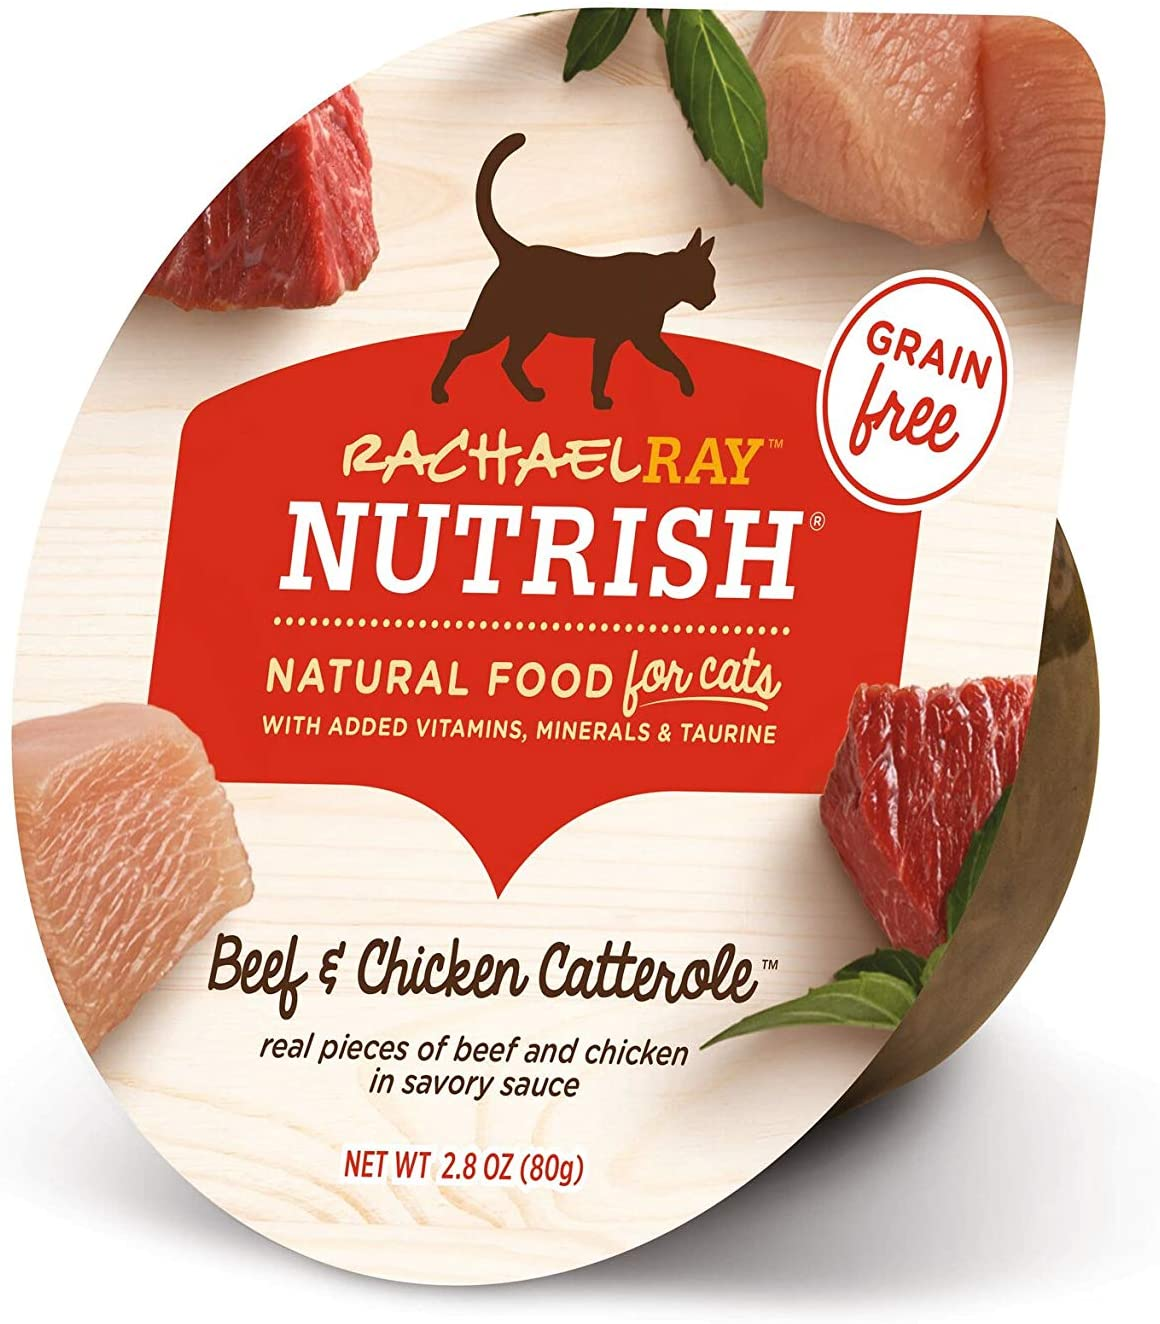 Rachael Ray Nutrish Natural Wet Cat Food, Beef & Chicken Catterole Recipe, 2.8 Ounce Cup (Pack of 12), Grain Free